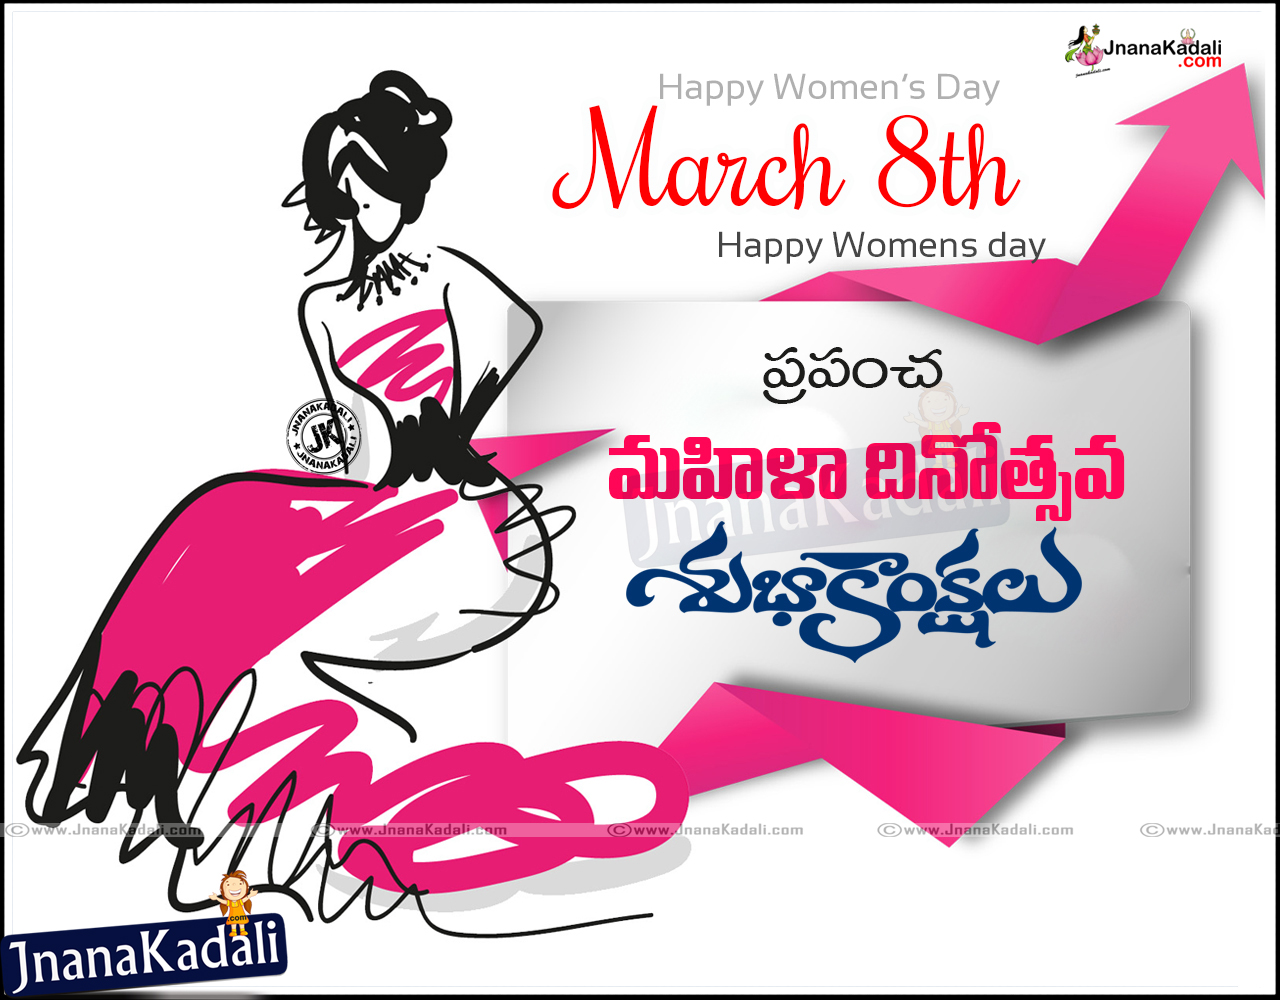 Happy Womens Day 2016 Quotes Greetings Messages Jnana Kadali